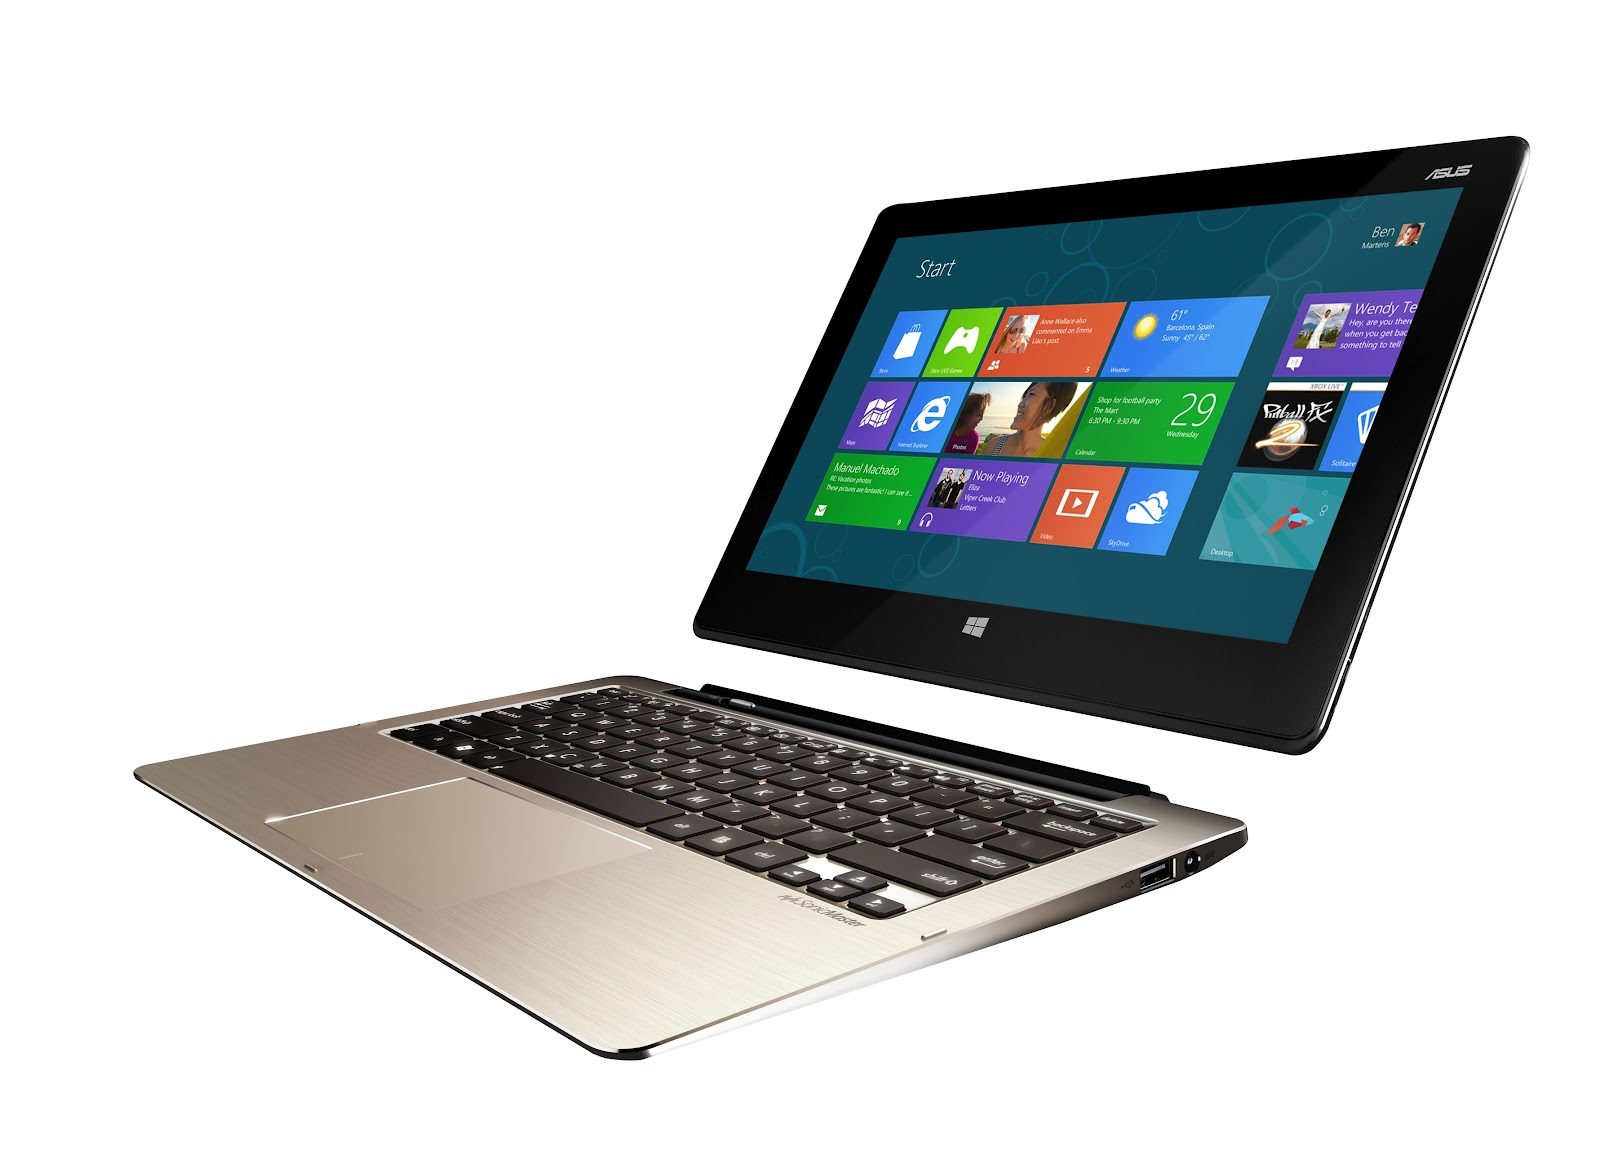 Laptop Tablett Asus Tablet 810 Specifications User Manual Price